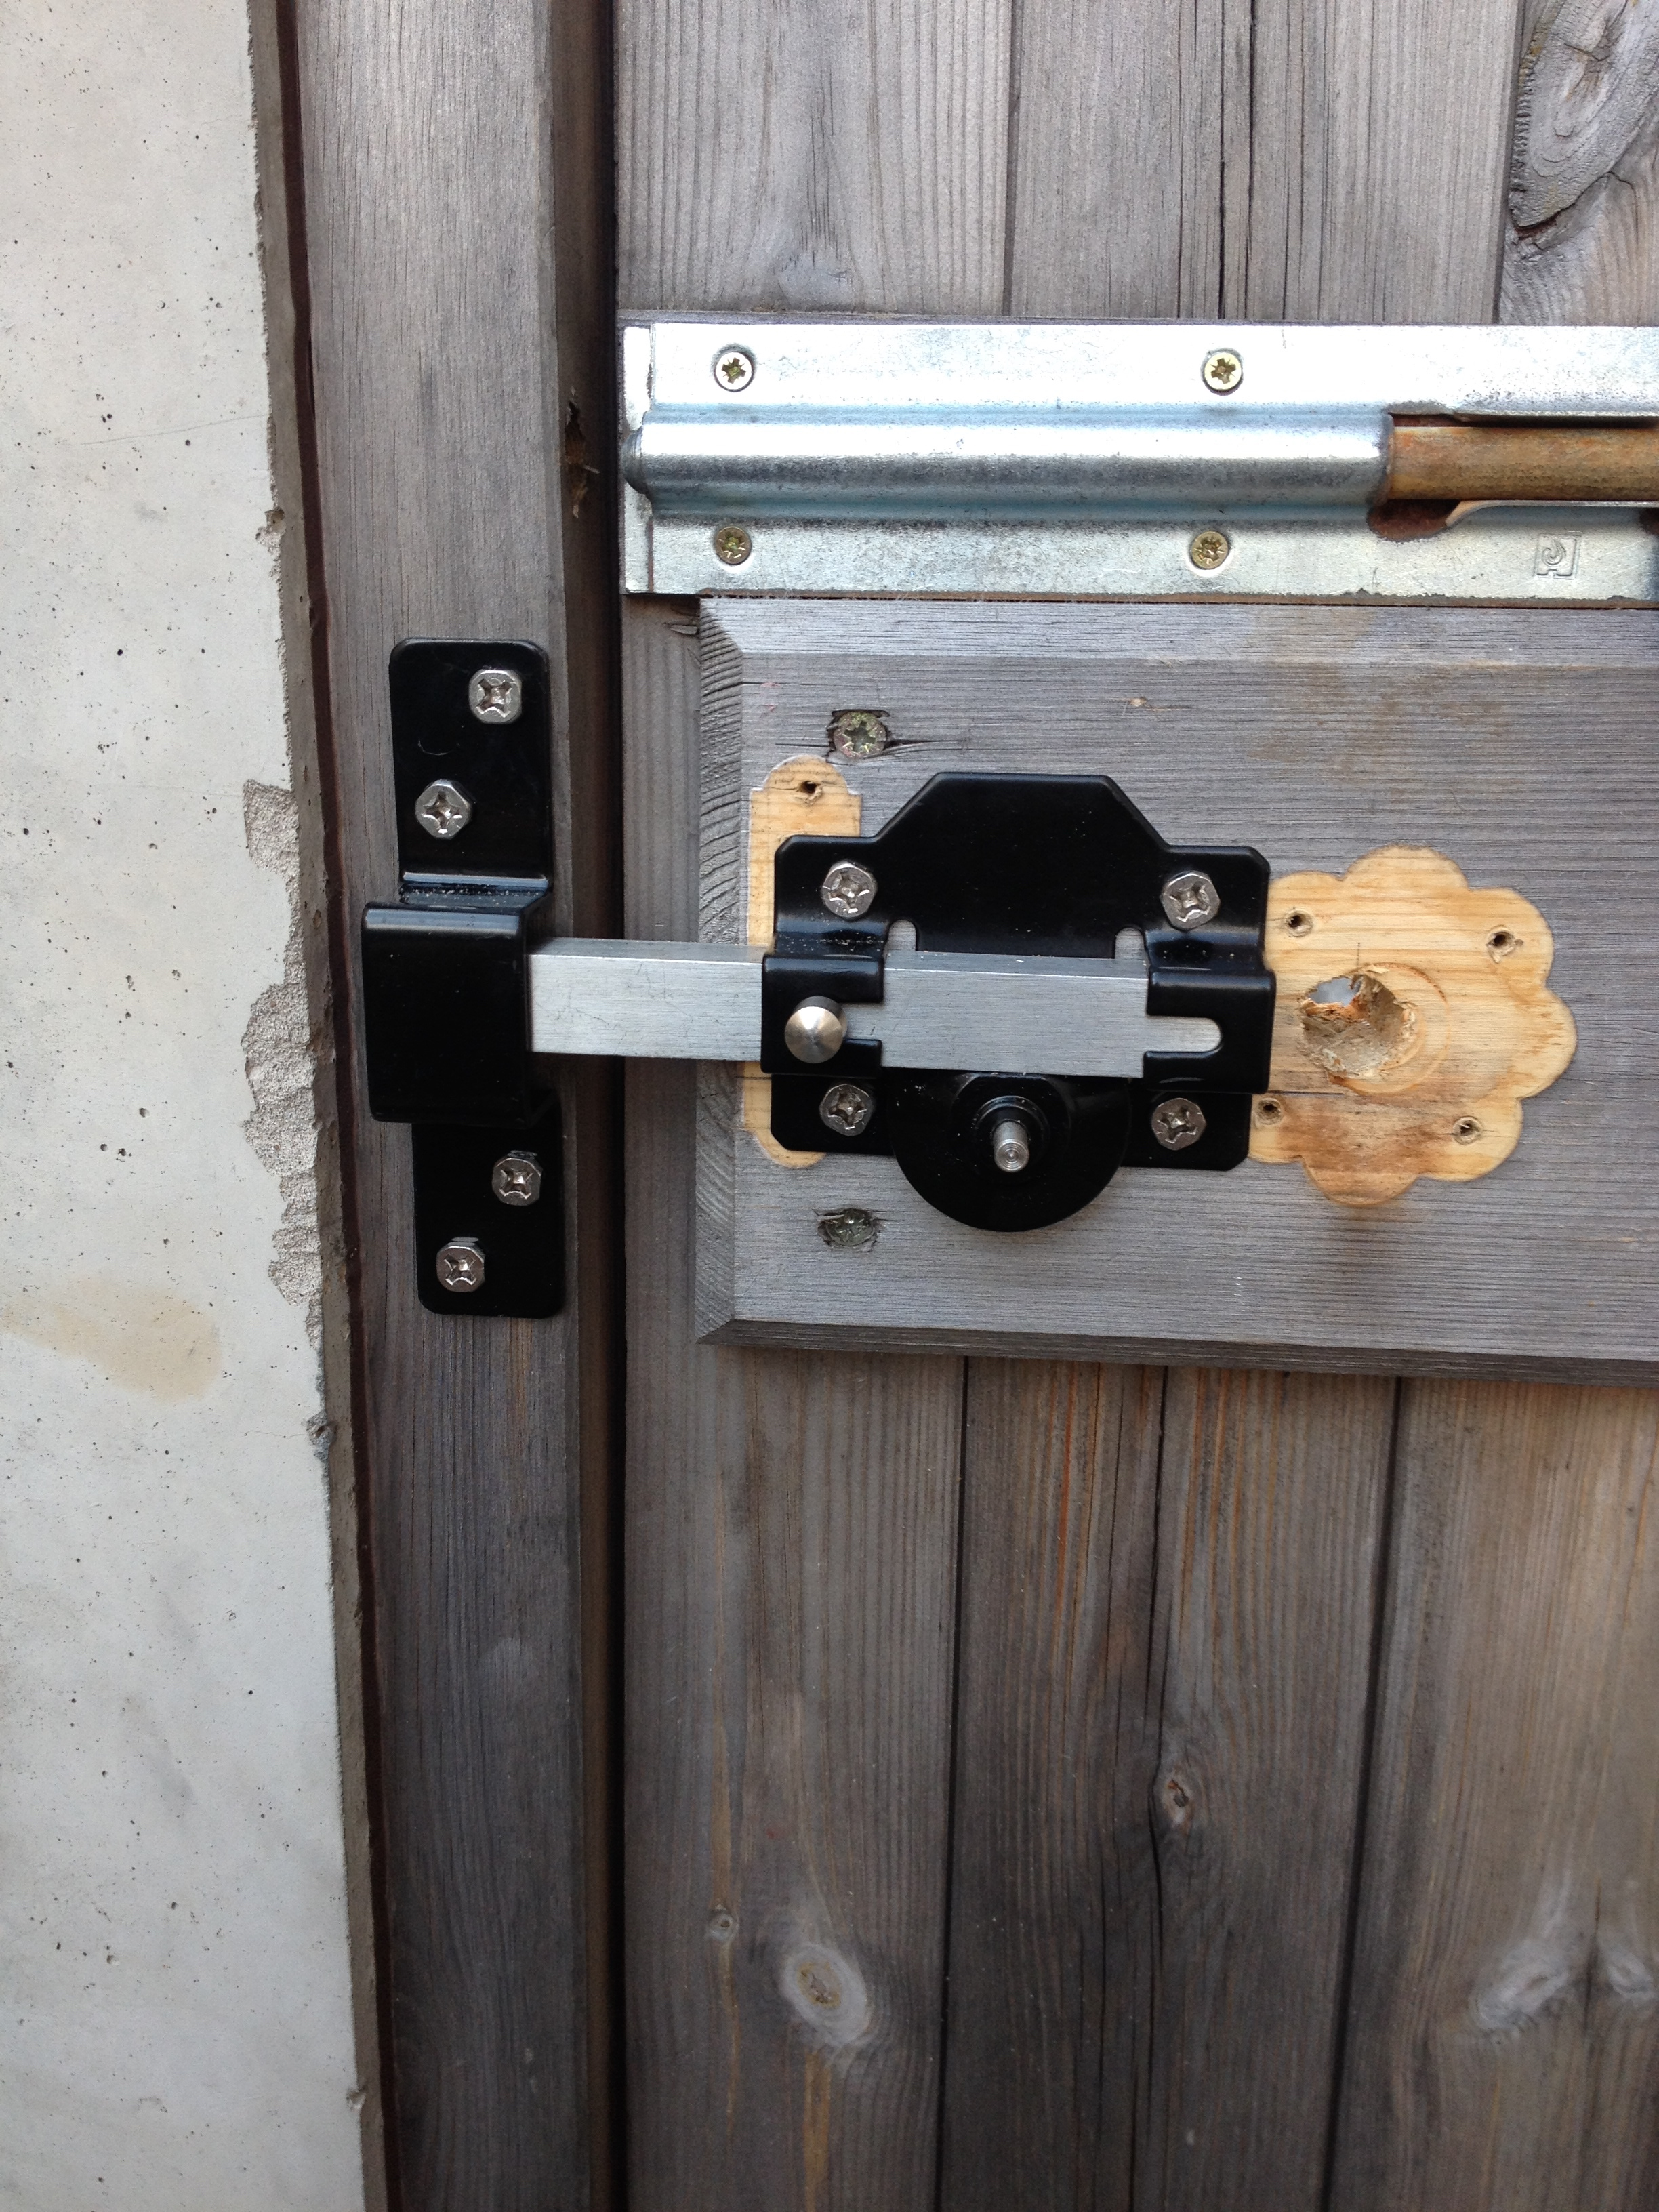 Why Not Have One Of These Gate Locks Fitted To Side Gate Or Shed For Extra  Security, Can Be Key Operated From Both Sides To Stop Unwanted Guests!